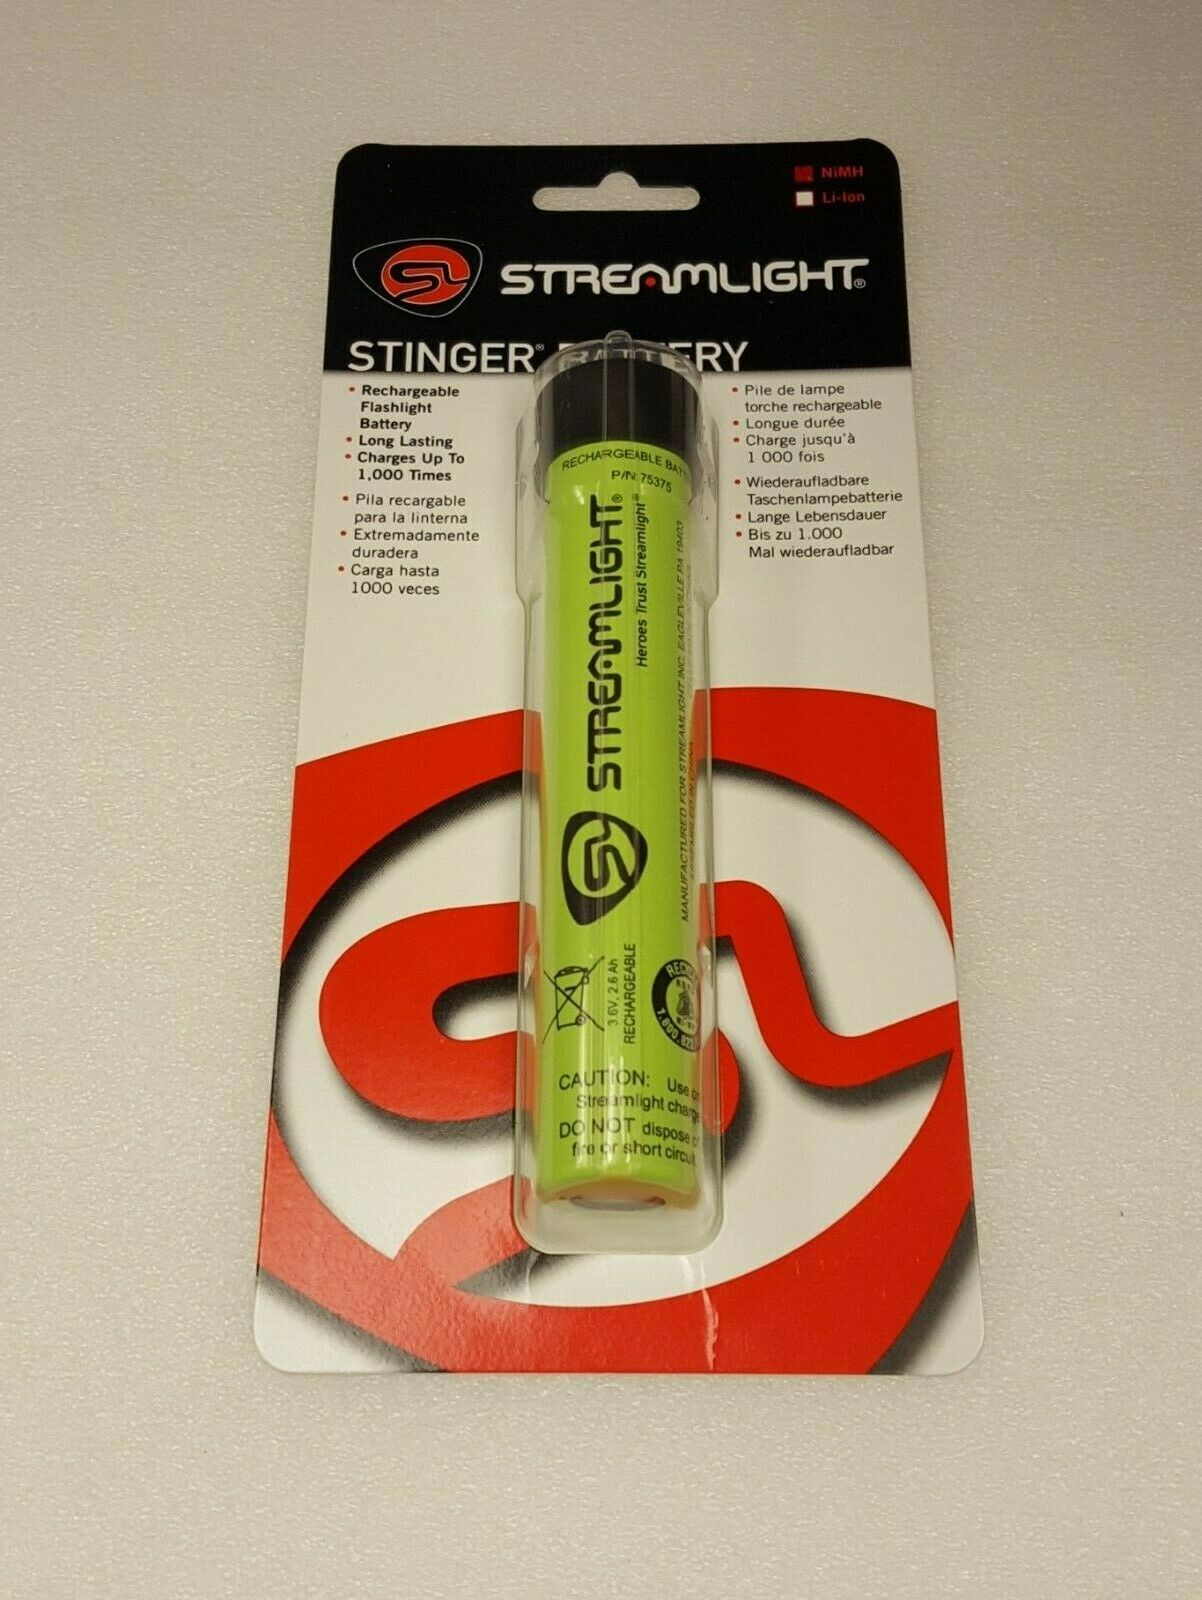 Streamlight 75375 Replacement NiMH Rechargeable Battery Stinger Series Light